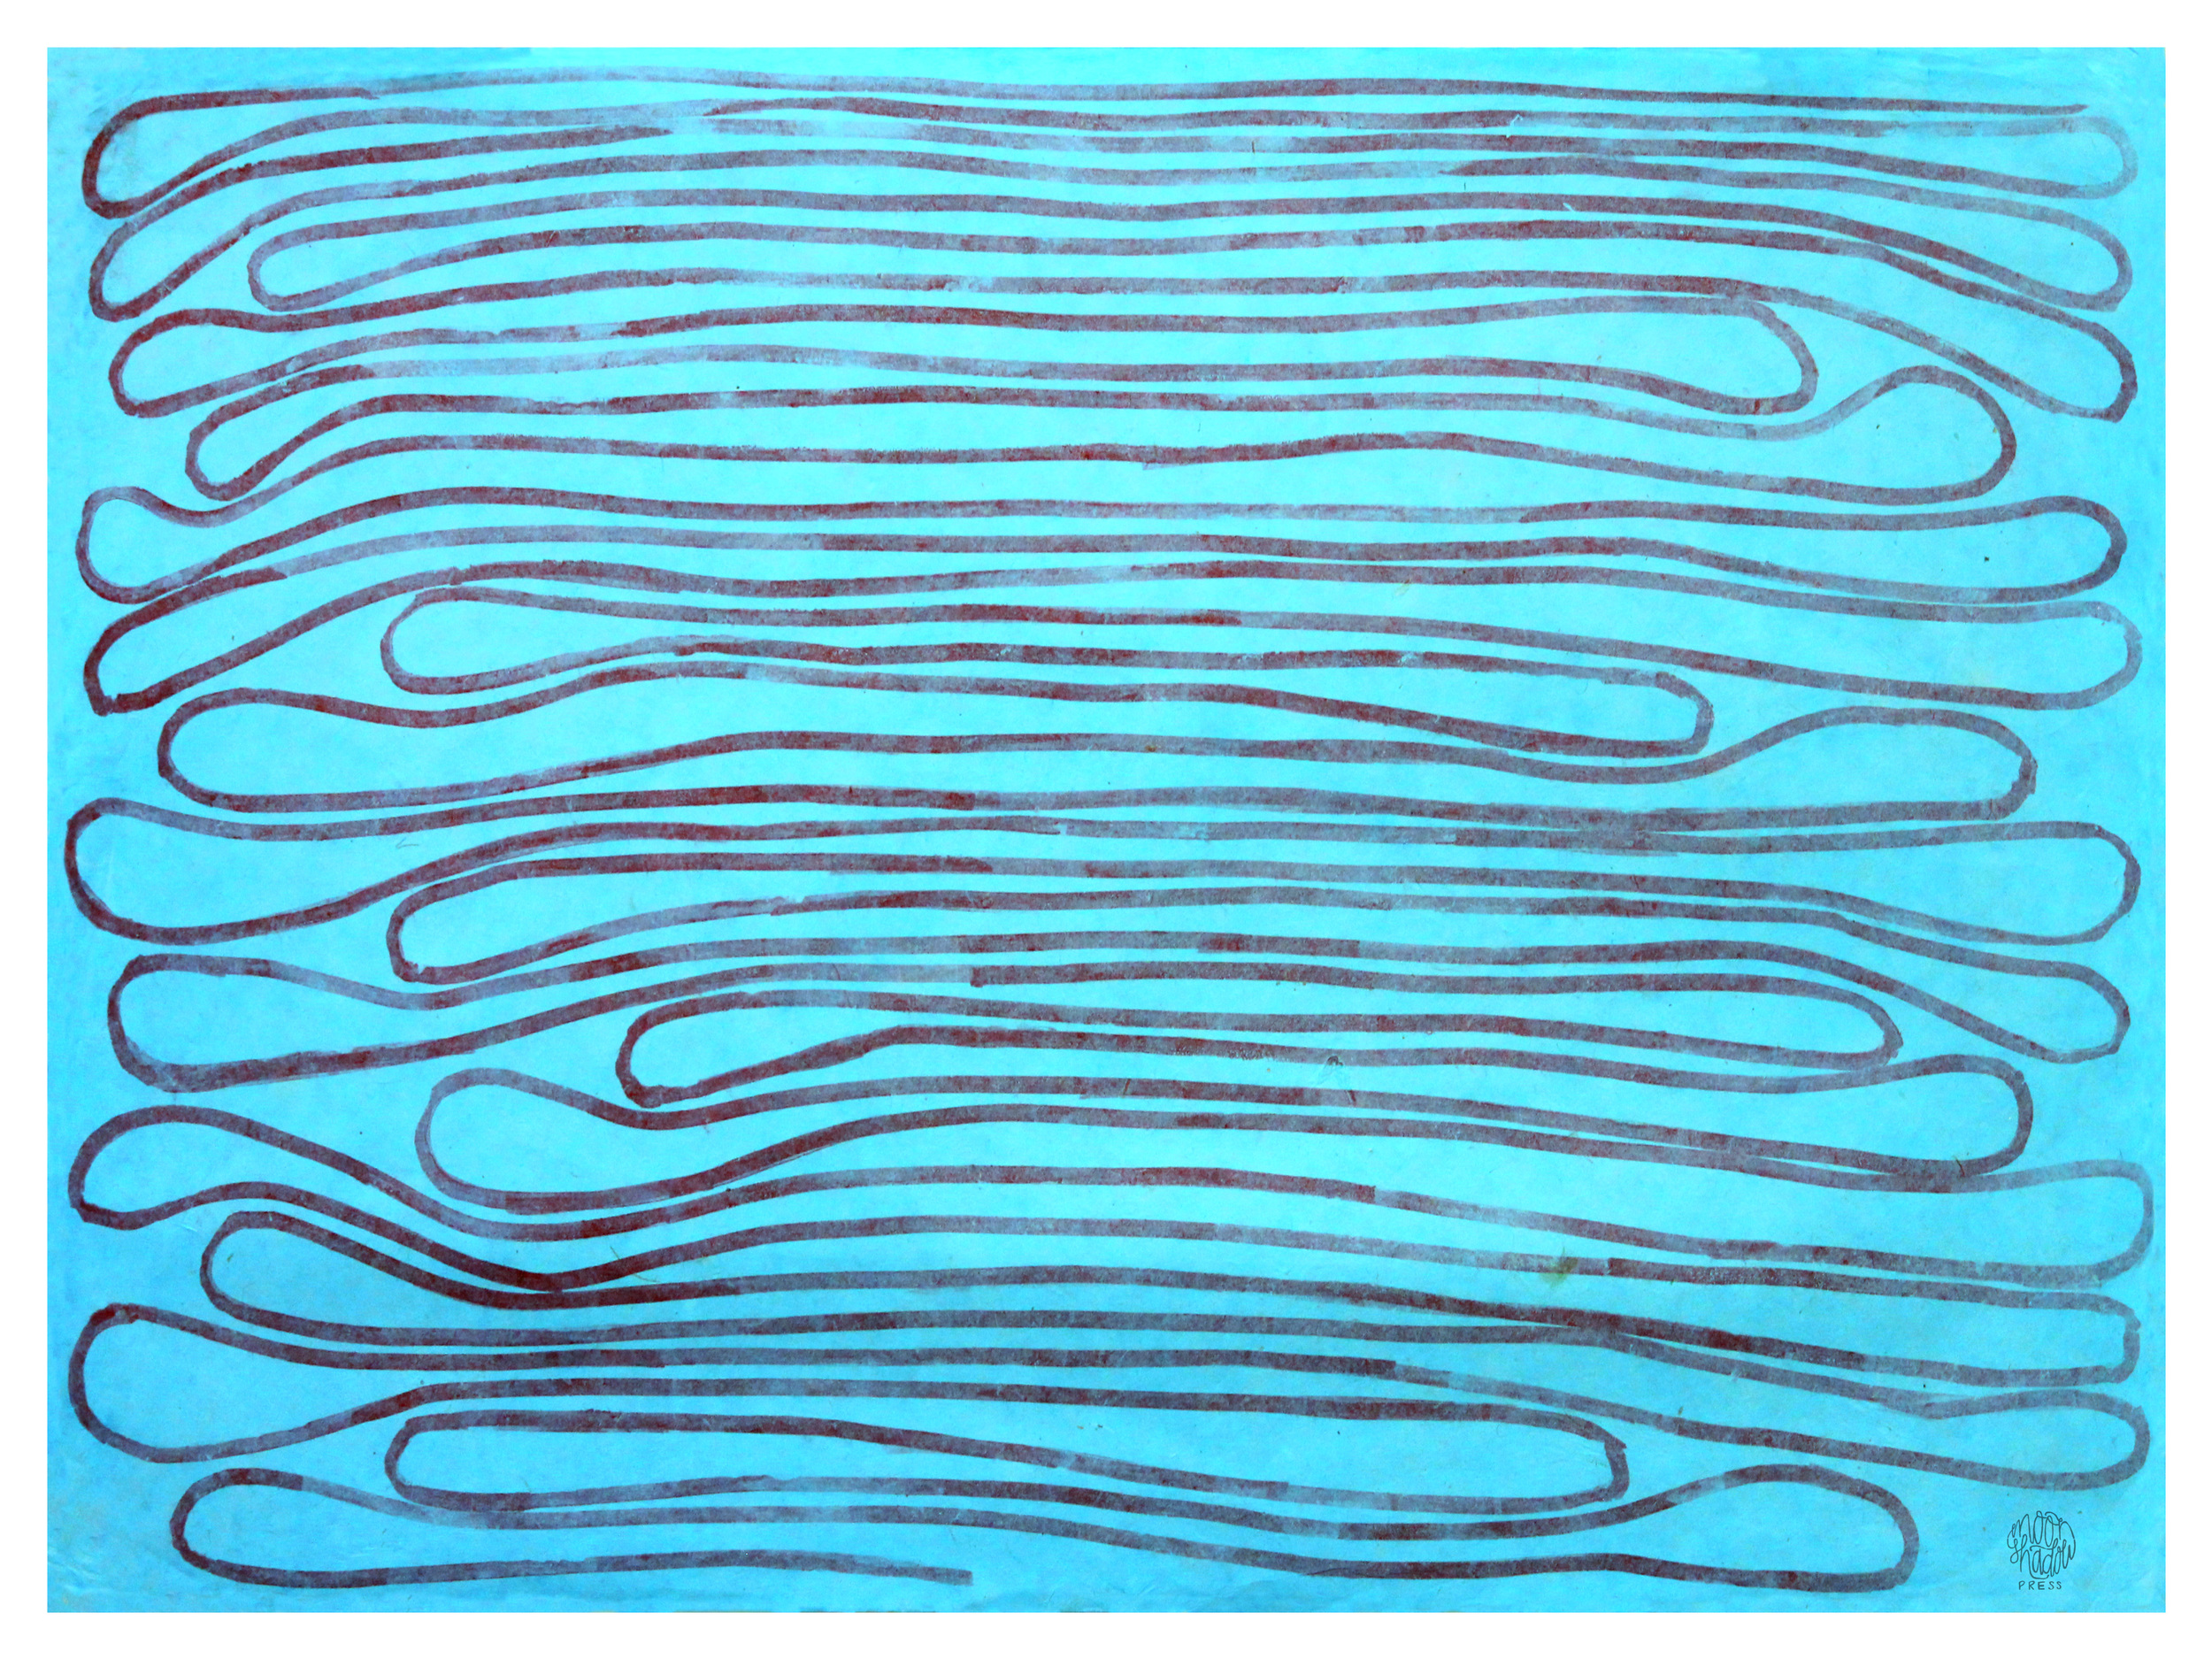 Follow a Line of Thought (monotype)